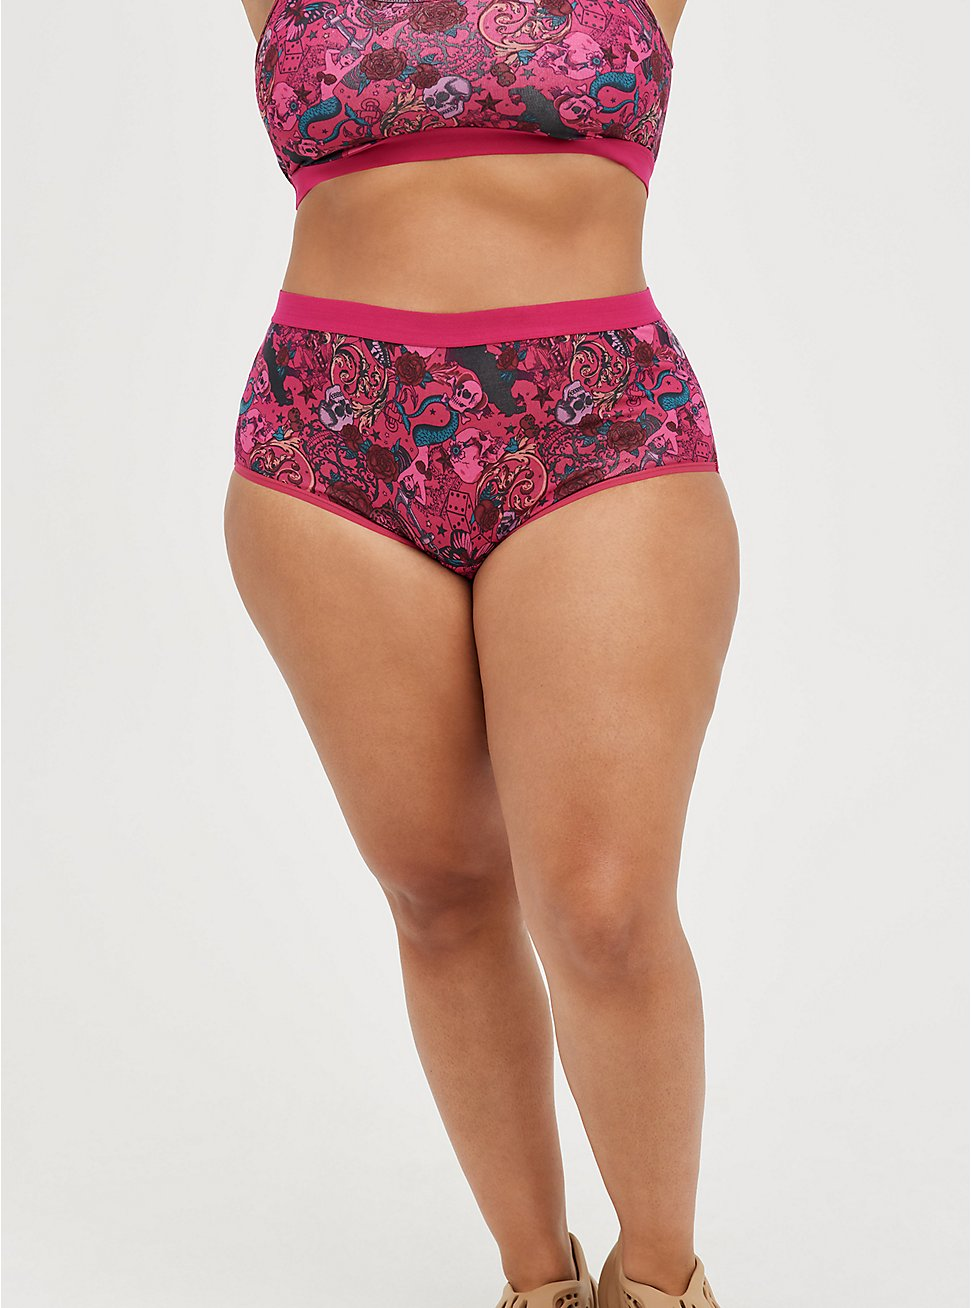 Plus Size Brief Panty - Cotton-Blend Tattoo Pink, TATTOO SINK, hi-res